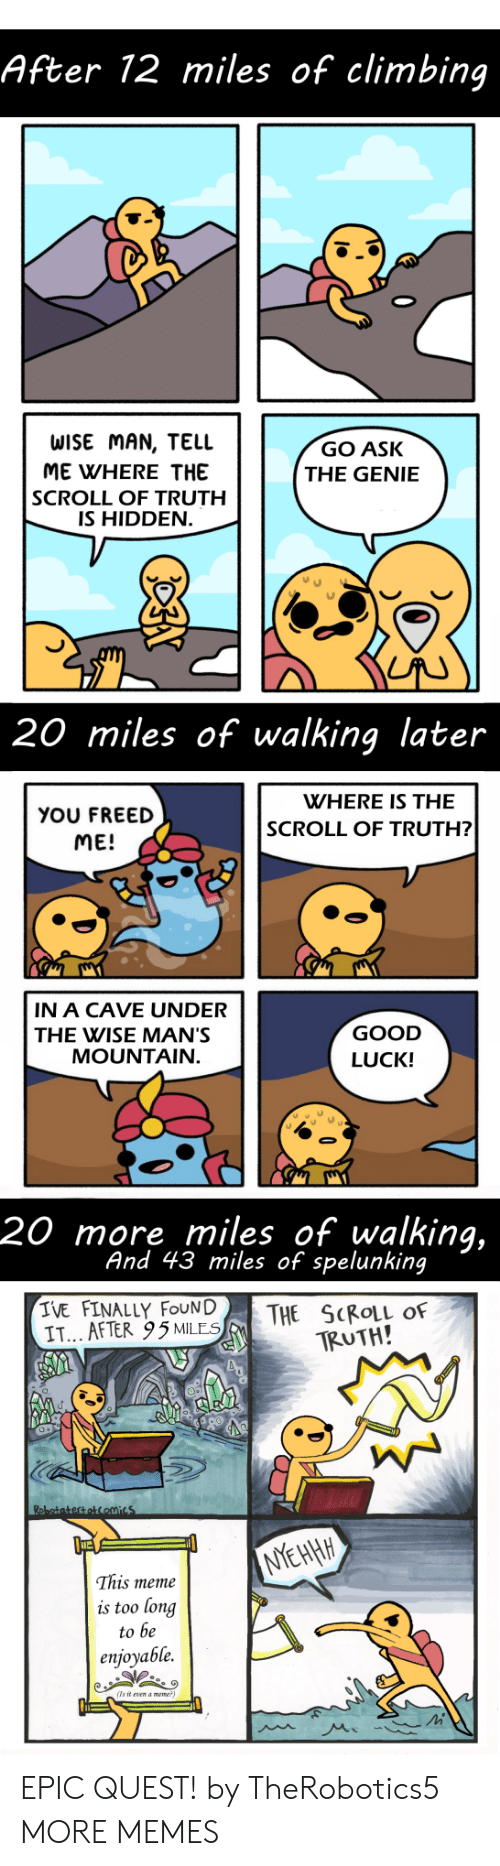 Climbing, Dank, and Meme: After 12 miles of climbing  WISE MAN, TELL  ME WHERE THE  SCROLL OF TRUTH  IS HIDDEN  GO ASK  THE GENIE  20 miles of walking later  WHERE IS THE  YOU FREED  ME!  SCROLL OF TRUTH?  IN A CAVE UNDER  THE WISE MAN'S  GOOD  LUCK!  MOUNTAIN  20 more miles of walking,  And 43 miles of spelunking  IVE FINALLY FOUN|  IT... AFTER 95MLES  THE SCROLL OF  TRUTH!  This meme  is too long  to be  enjoyable.  (Ts it vn a meme EPIC QUEST! by TheRobotics5 MORE MEMES